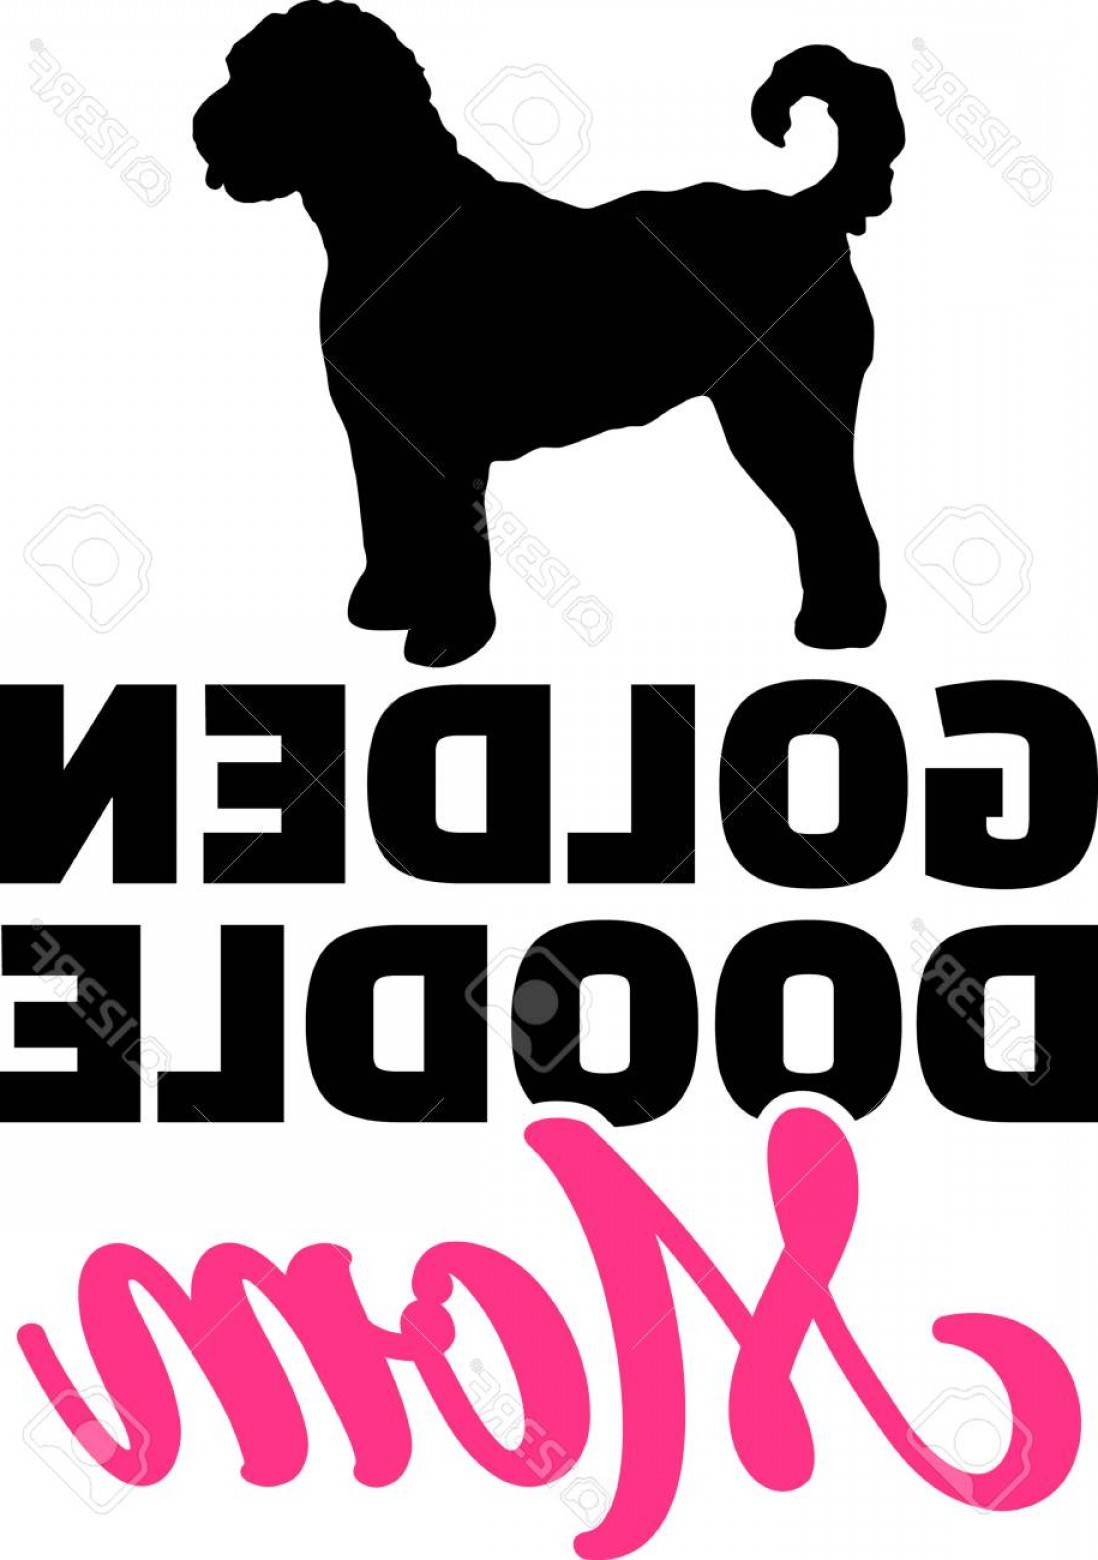 Goldendoodle Vector SVG: Photostock Vector Goldendoodle Mom Silhouette With Pink Word